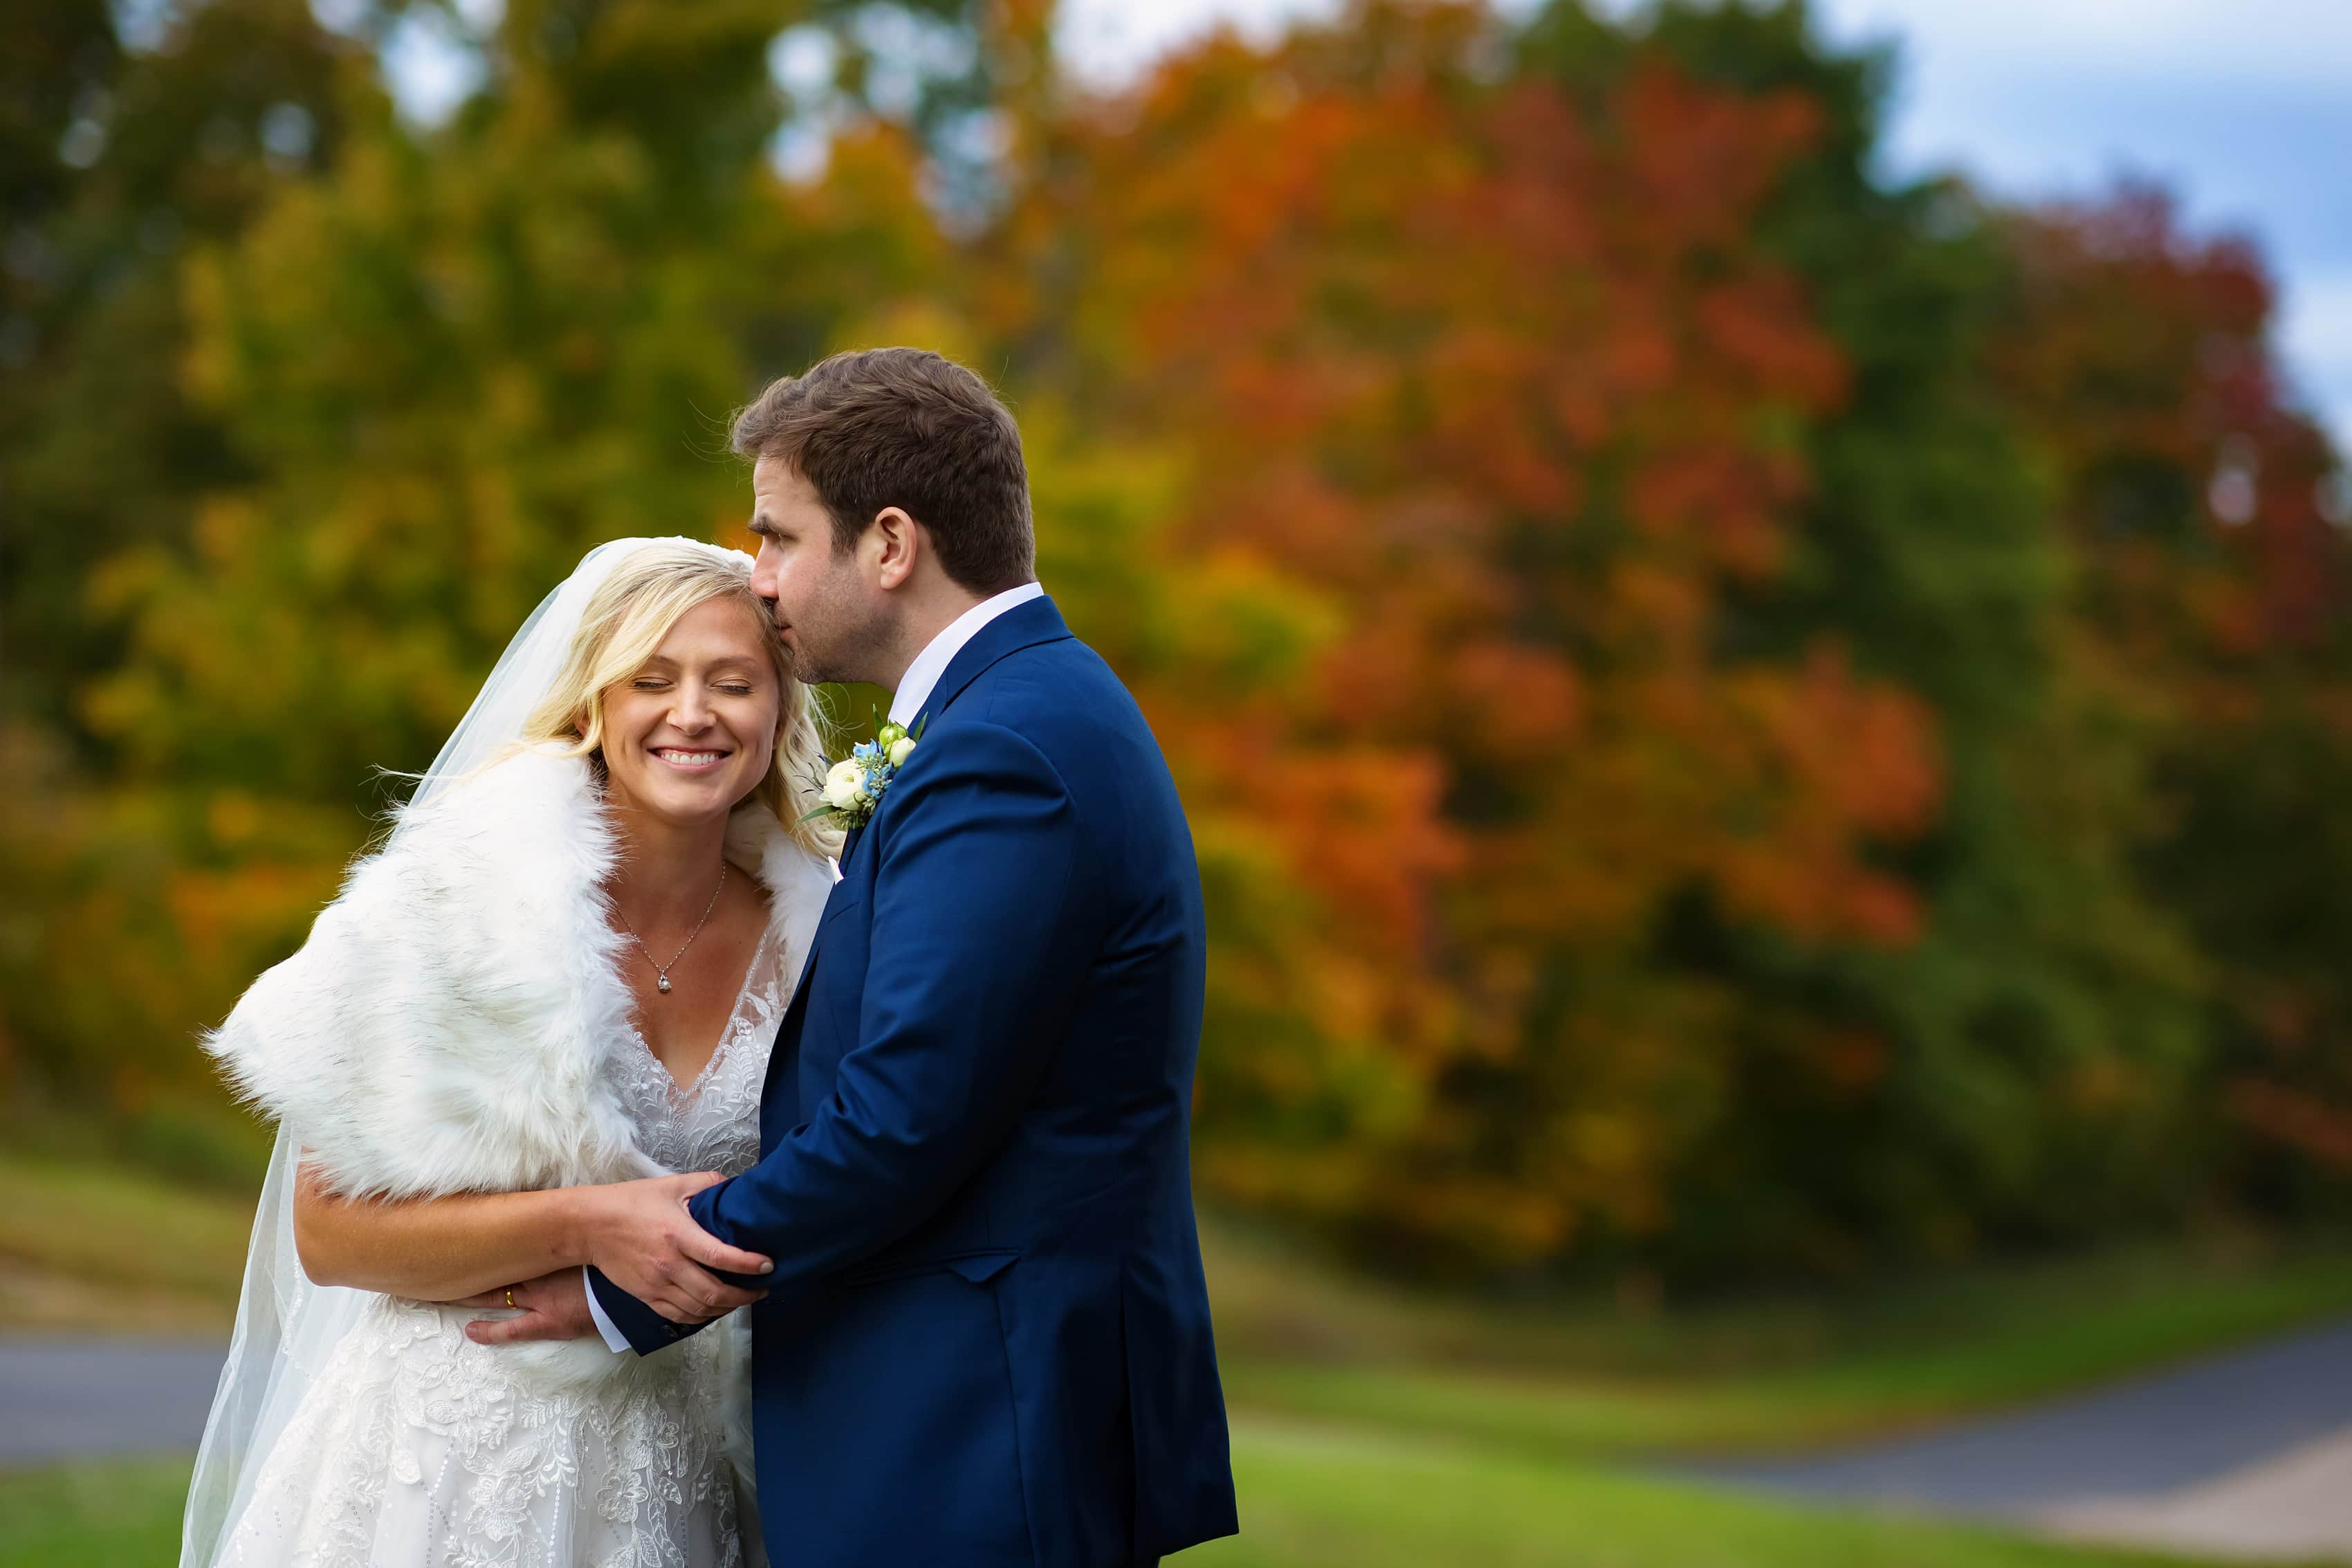 bride and groom pose for wedding portraits at Petoskey Farms with fall colors in the background